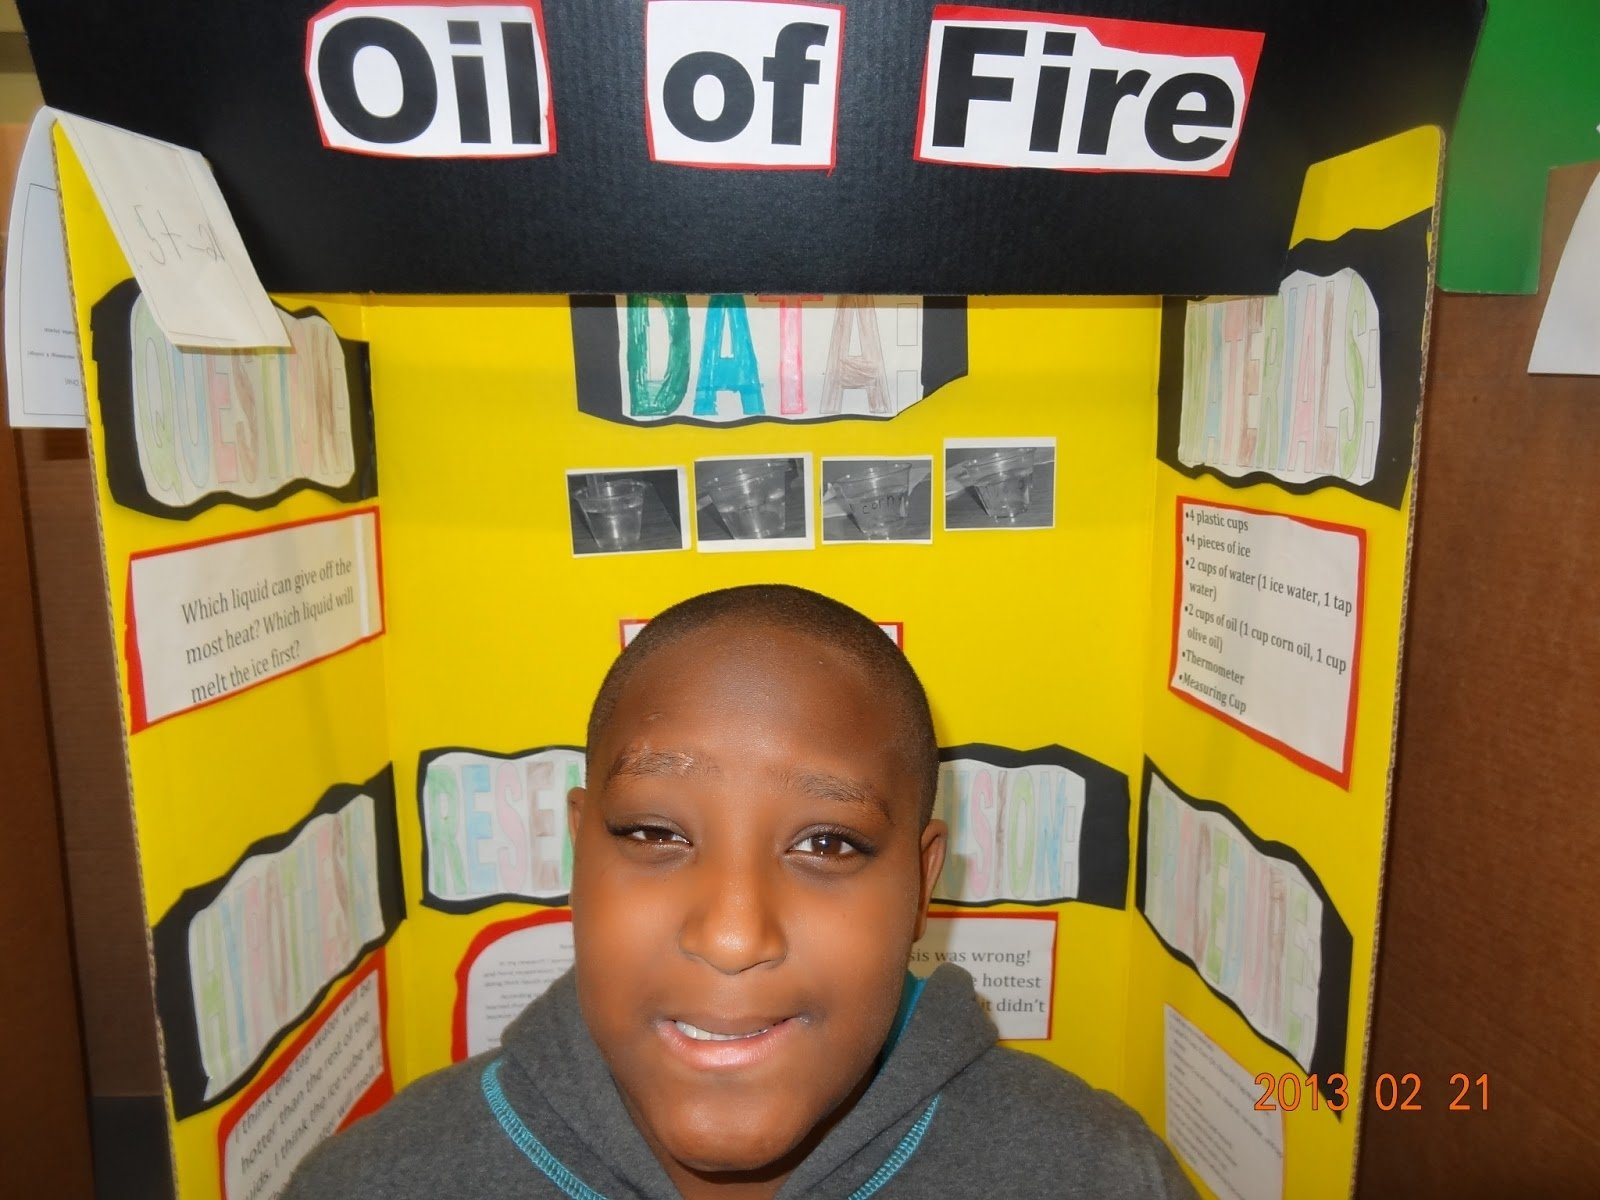 10 Most Recommended Science Fair Projects For 8Th Graders Winning Ideas nokw woodwork 5th grade 8th grade science fair projects info 41 2020